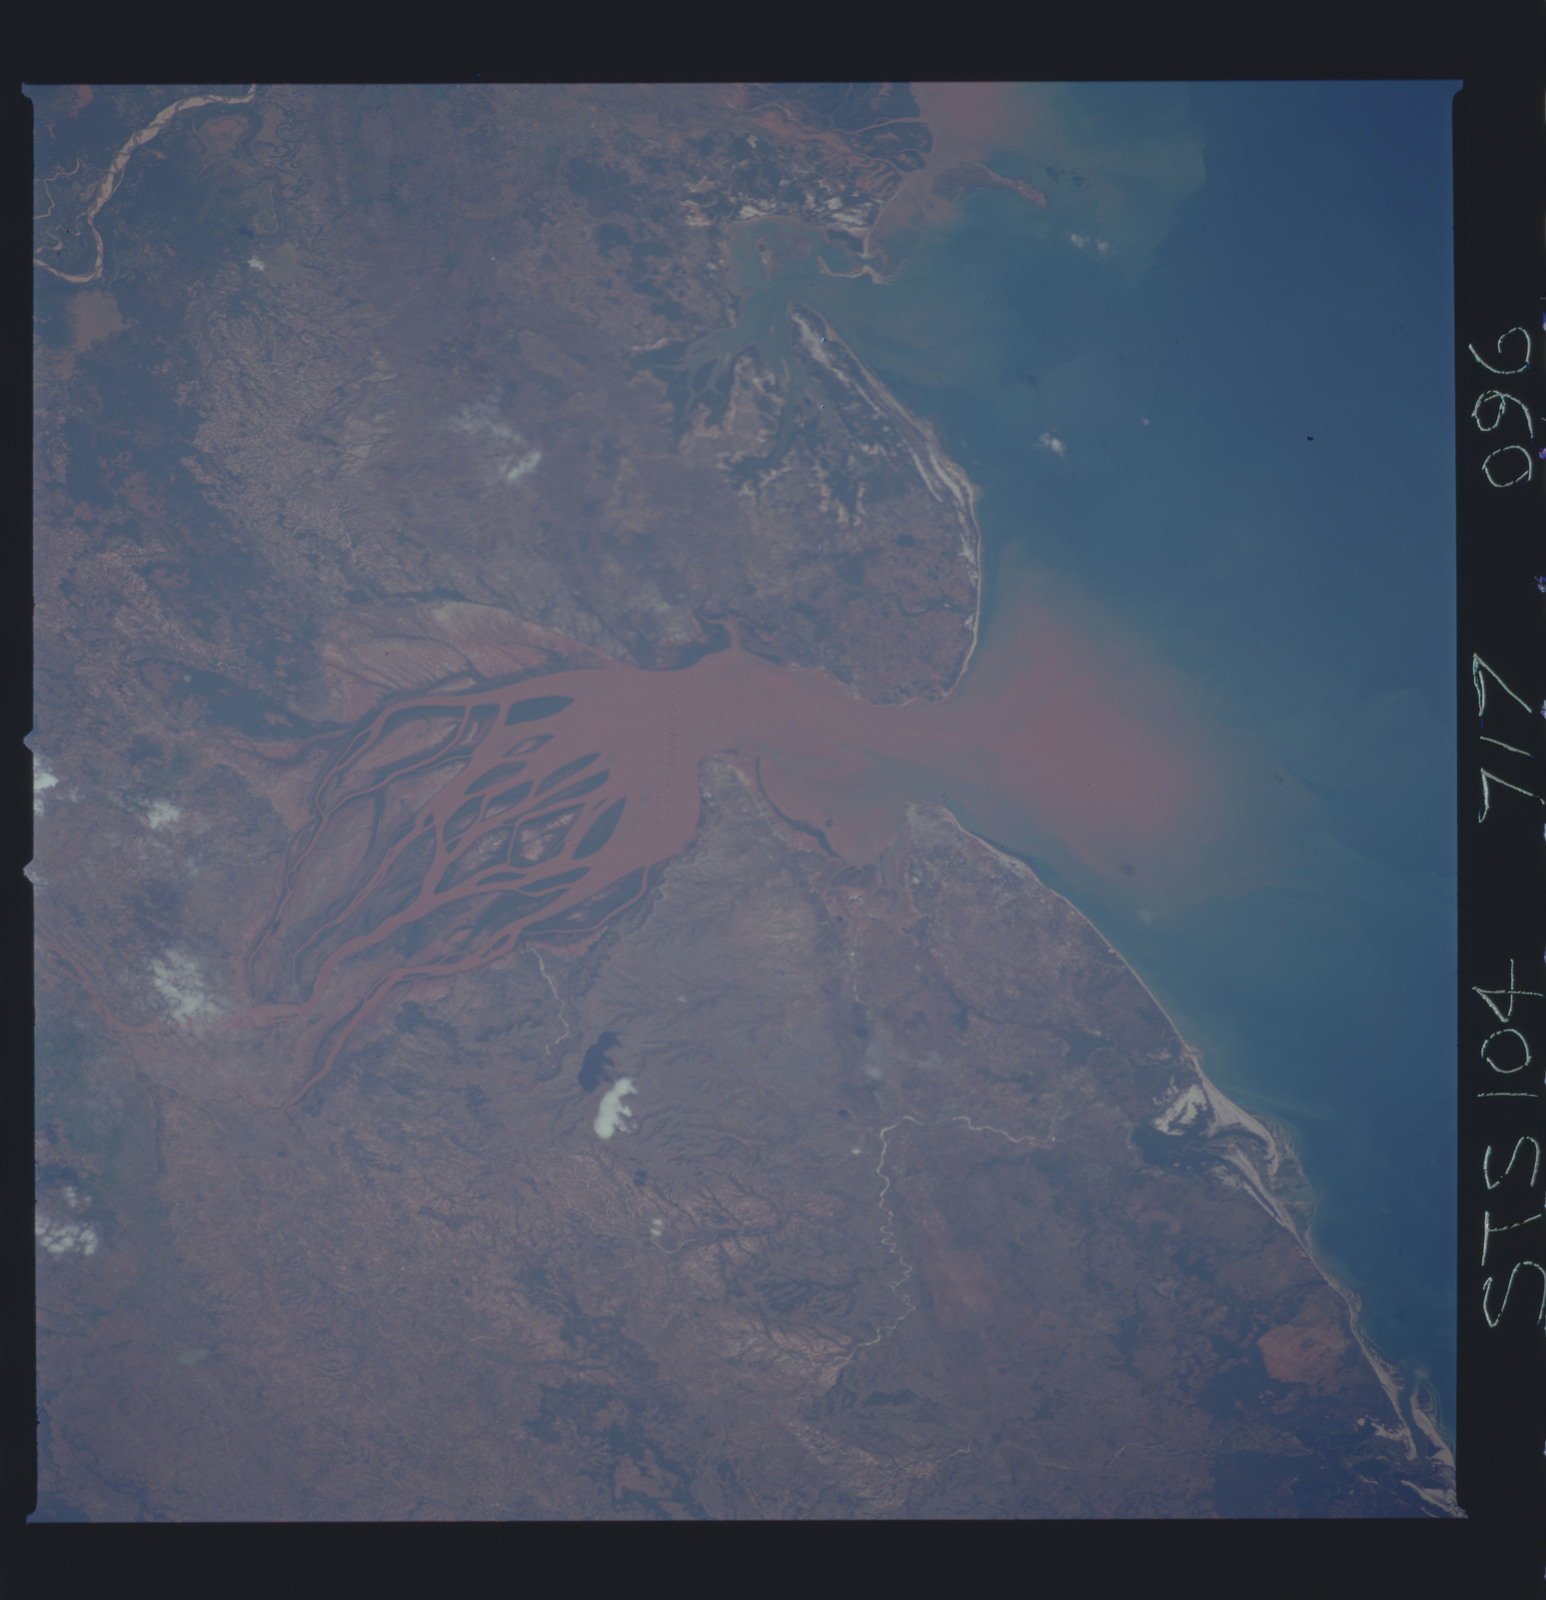 STS104-717-096 - STS-104 - View of Betsiboka River estuary, Madagascar taken by the STS-104 crew